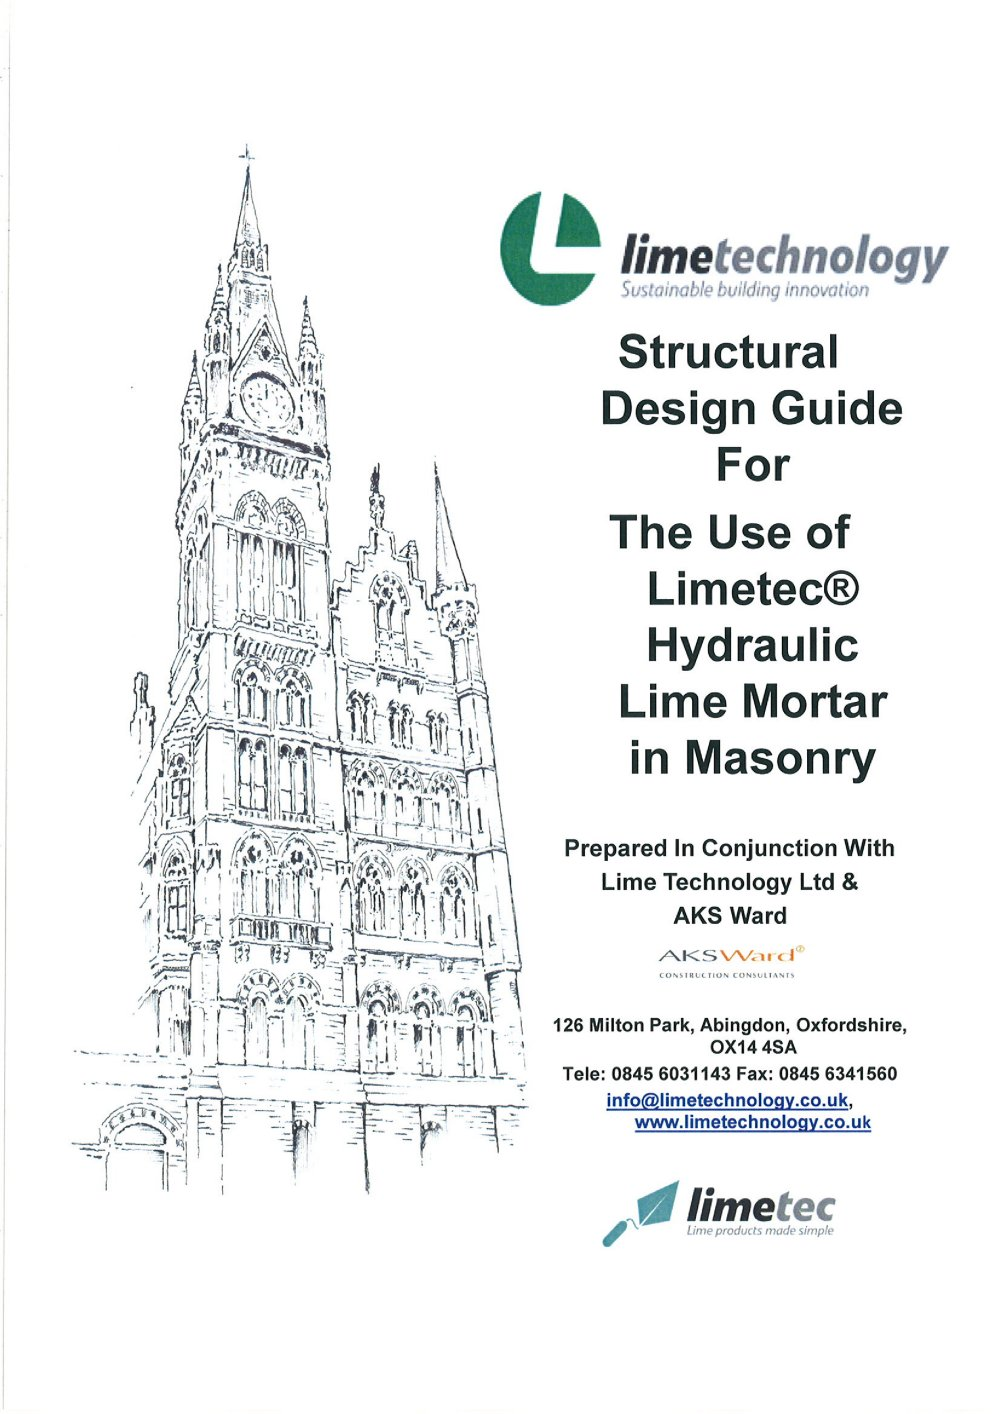 Structural Design Guide For The Use Of Limetec® Hydraulic Lime Mortars In  Masonry   1 / 17 Pages